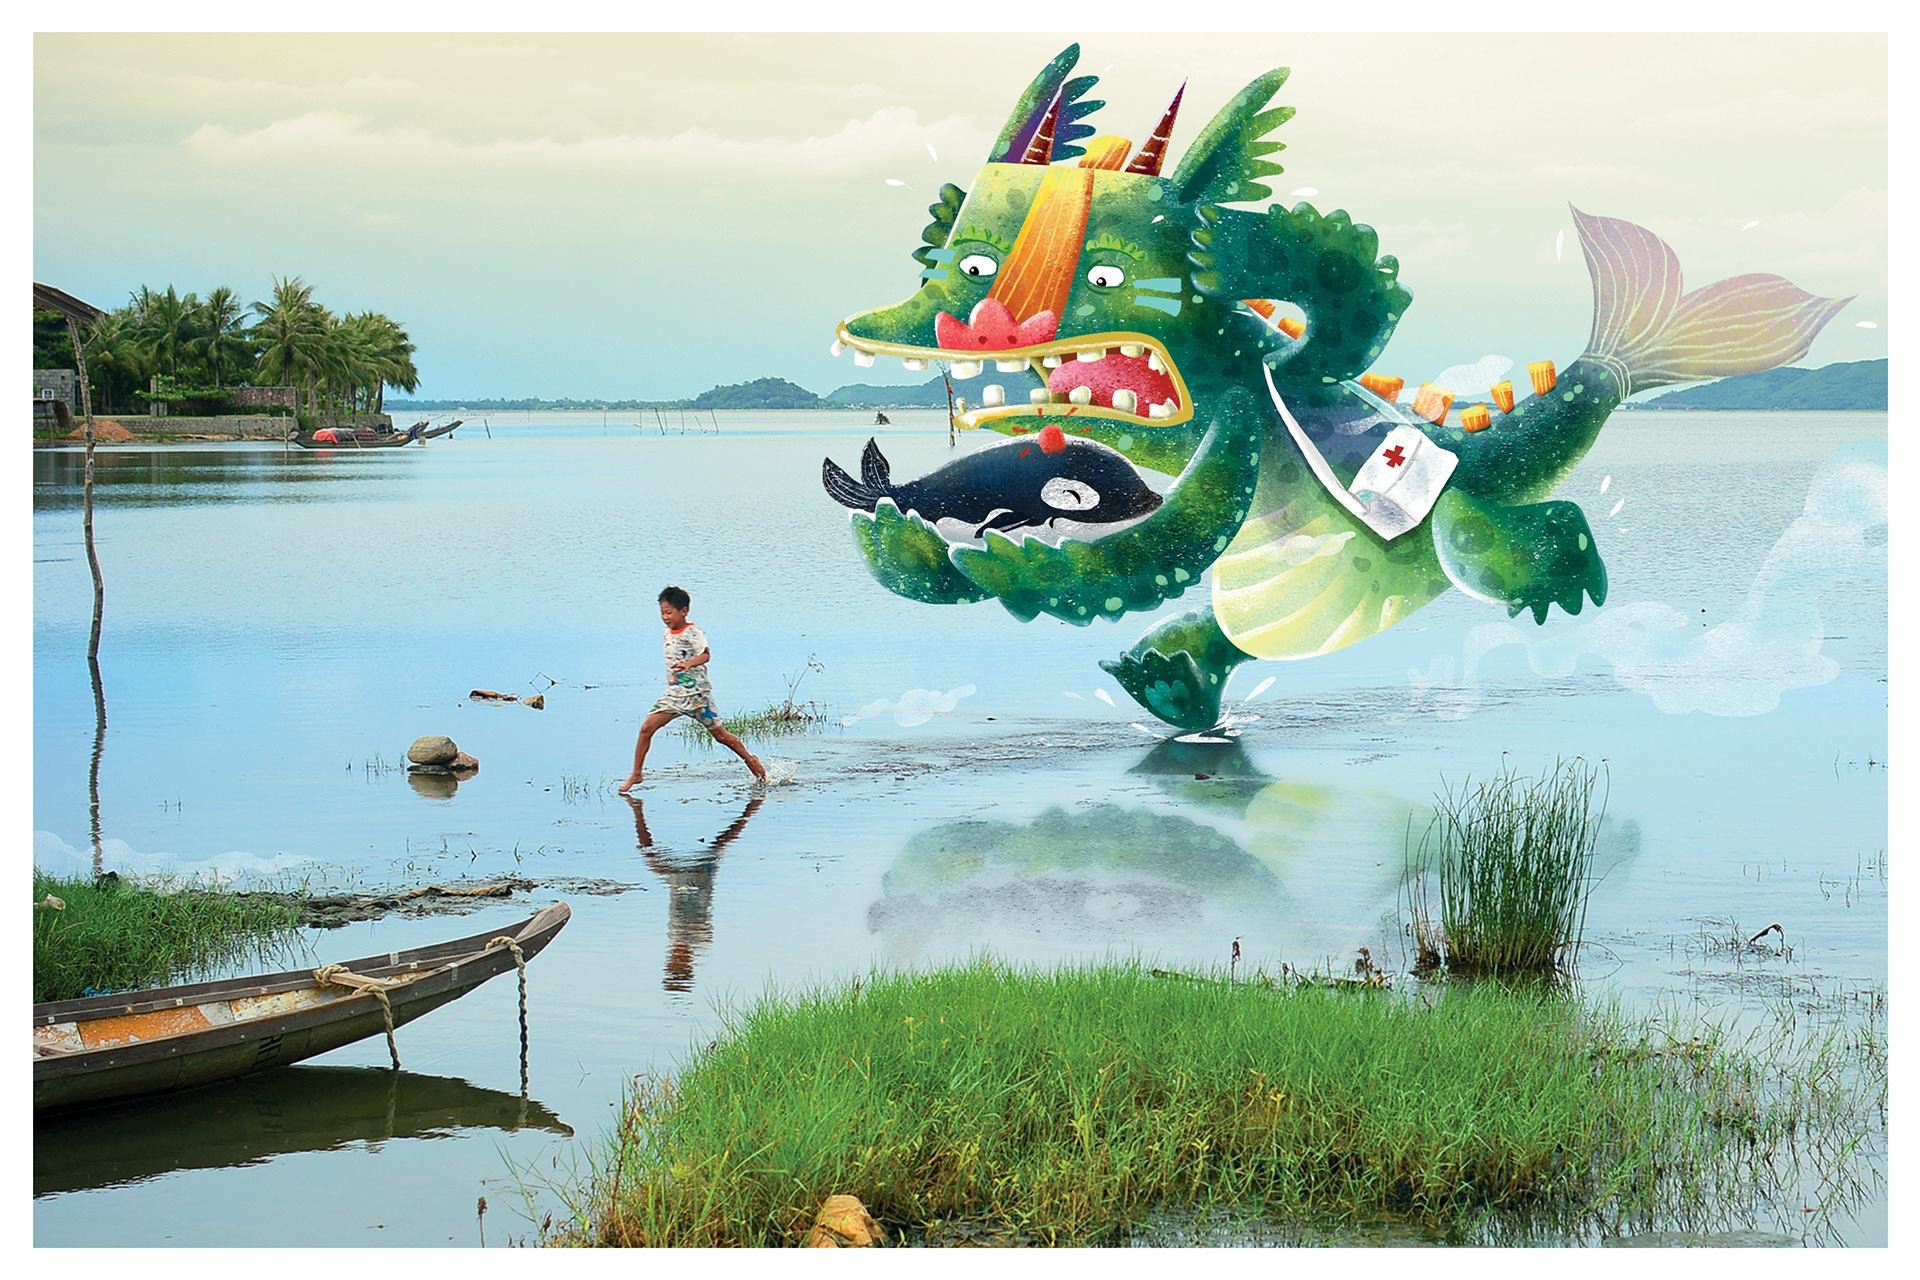 Pham Quang Phuc and Hoang Ngoc Doan Trang's entry to the 2018 ASEAN Children's Books Illustrator Awards